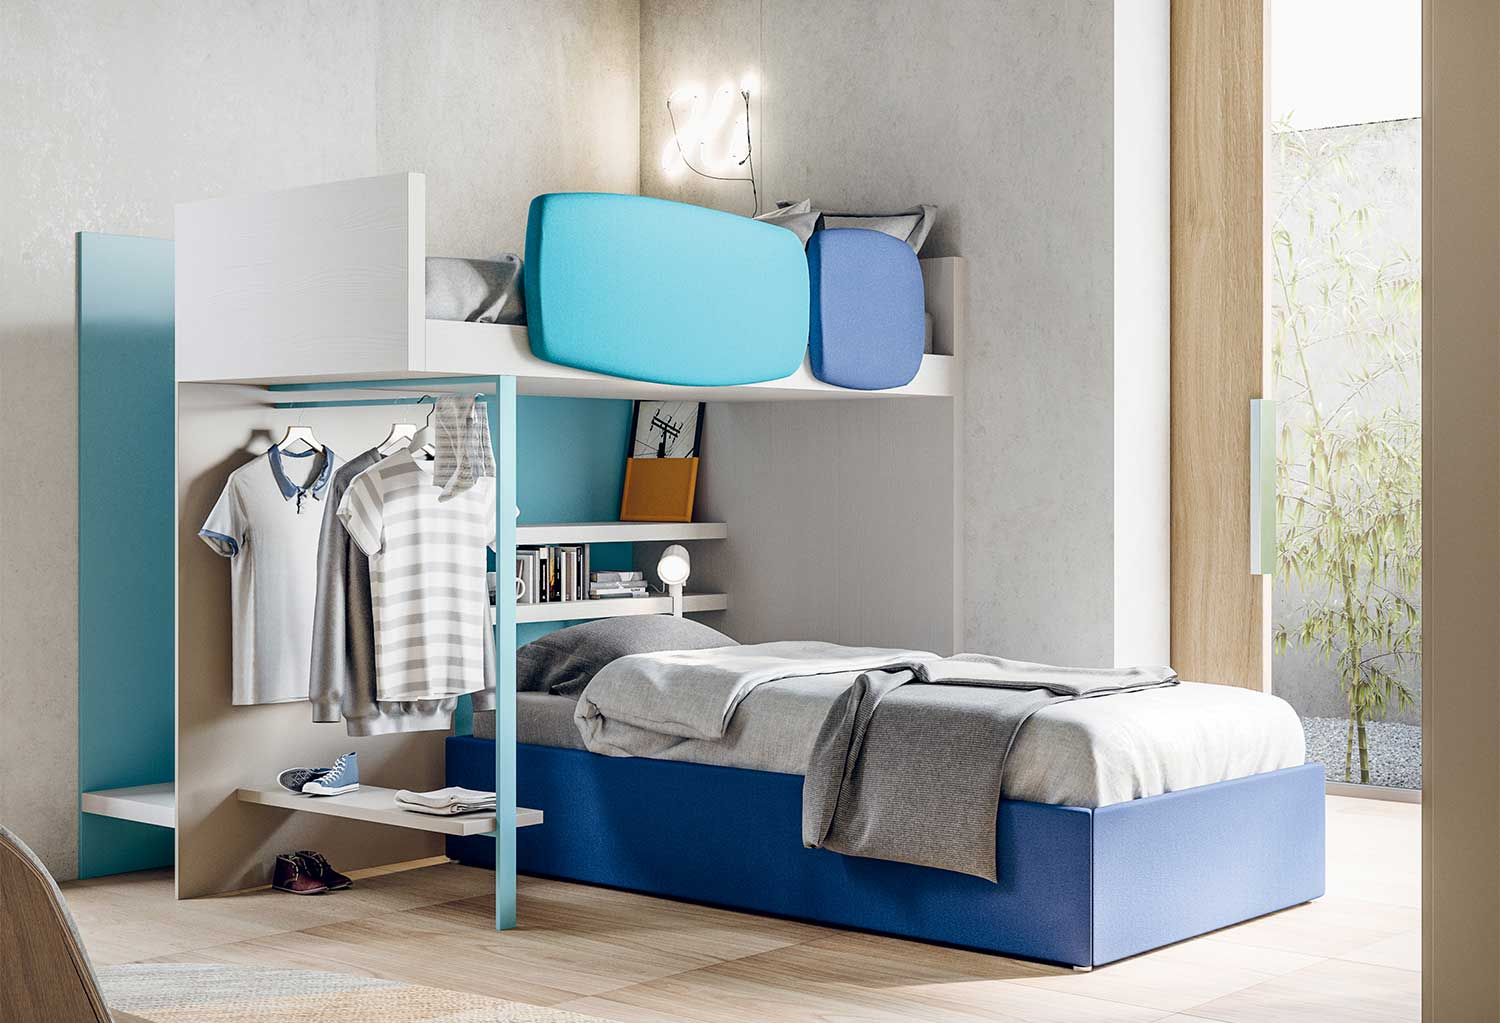 Sky bunk bed with stairs and built in clothes rack